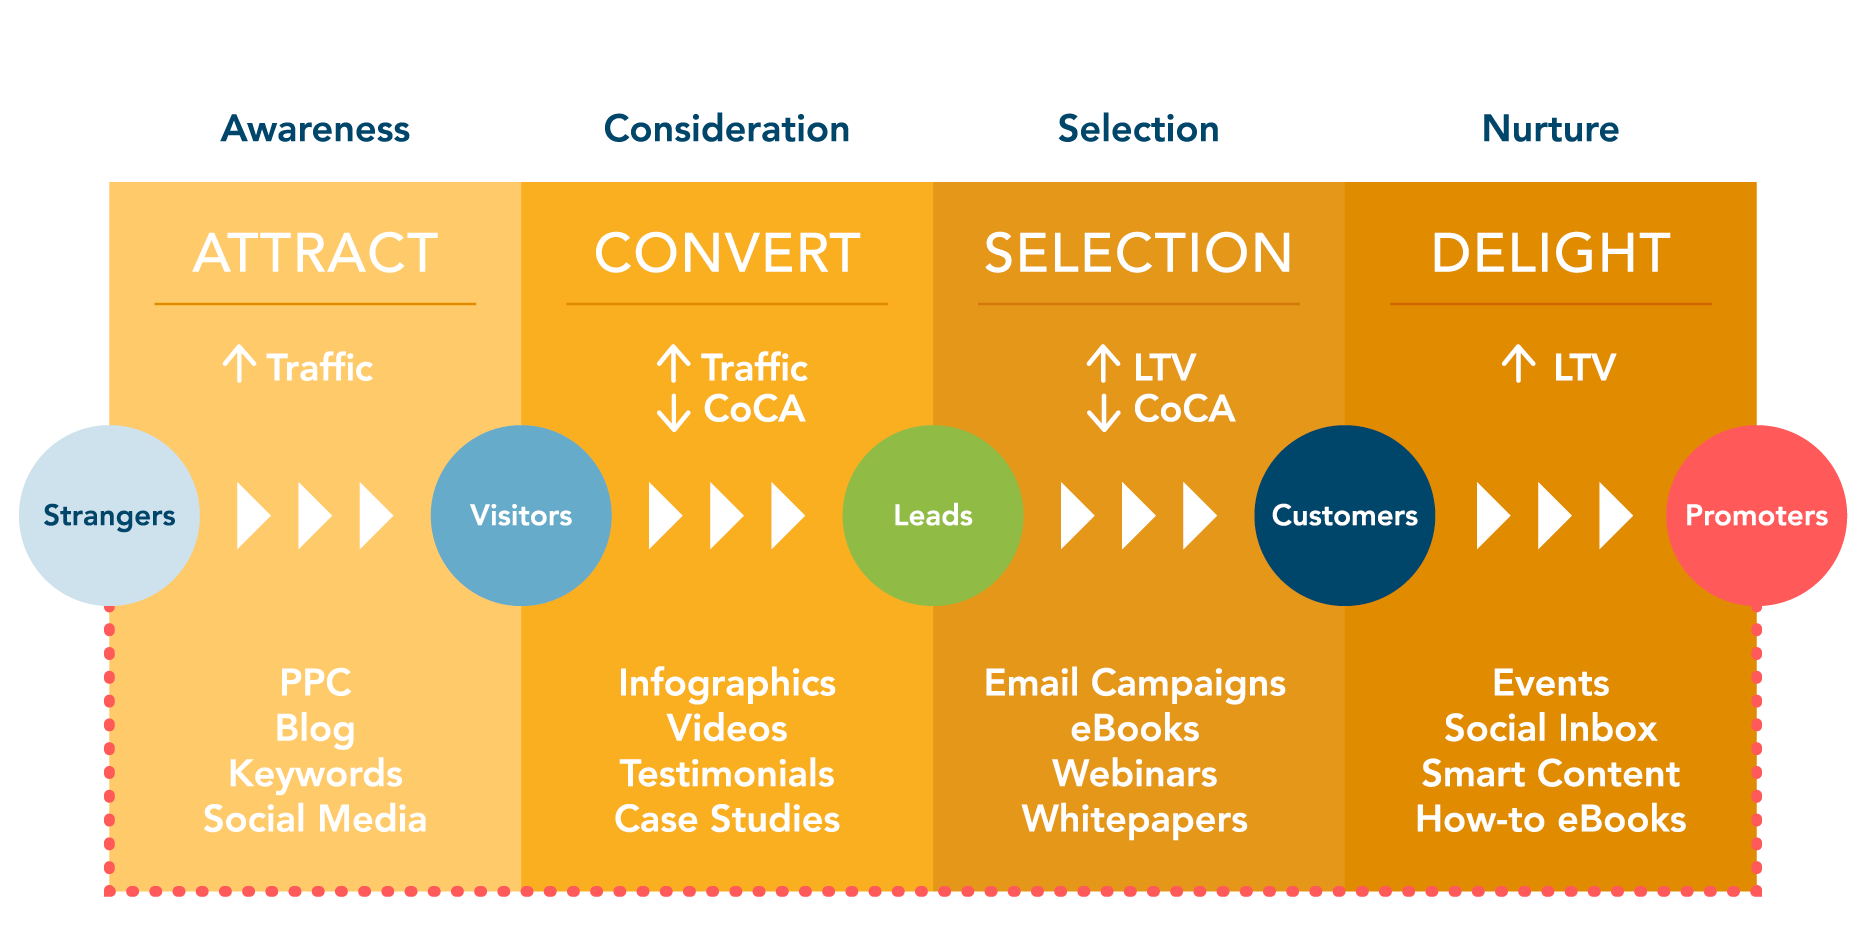 Inbound Methodology in 4 stages: Attract, Convert, Selection, Delight